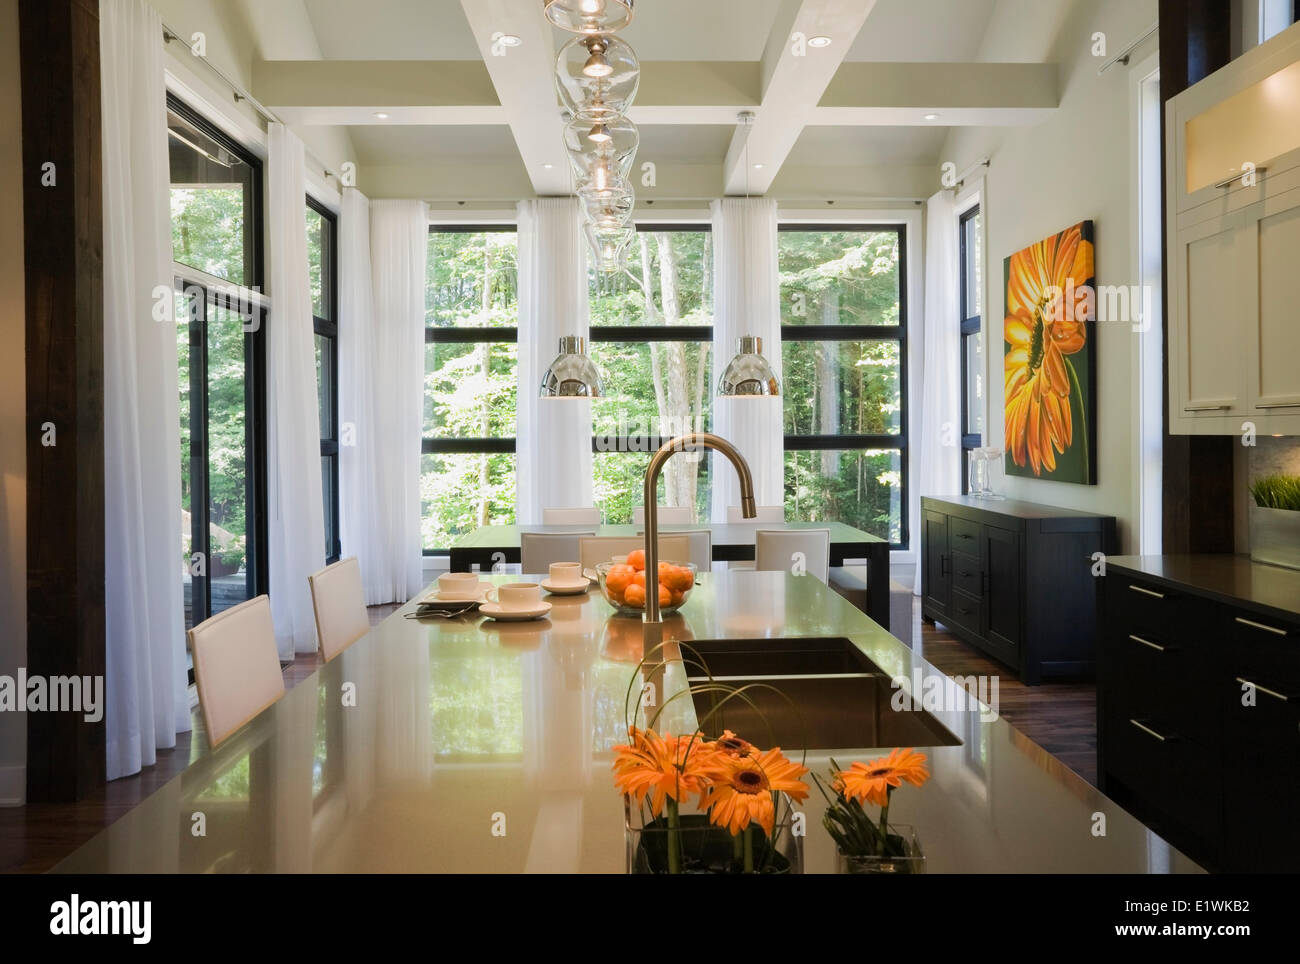 Kitchen And Dining Room Inside An Upscale Residential Home Quebec Canada This Image Is Property Released PR0187